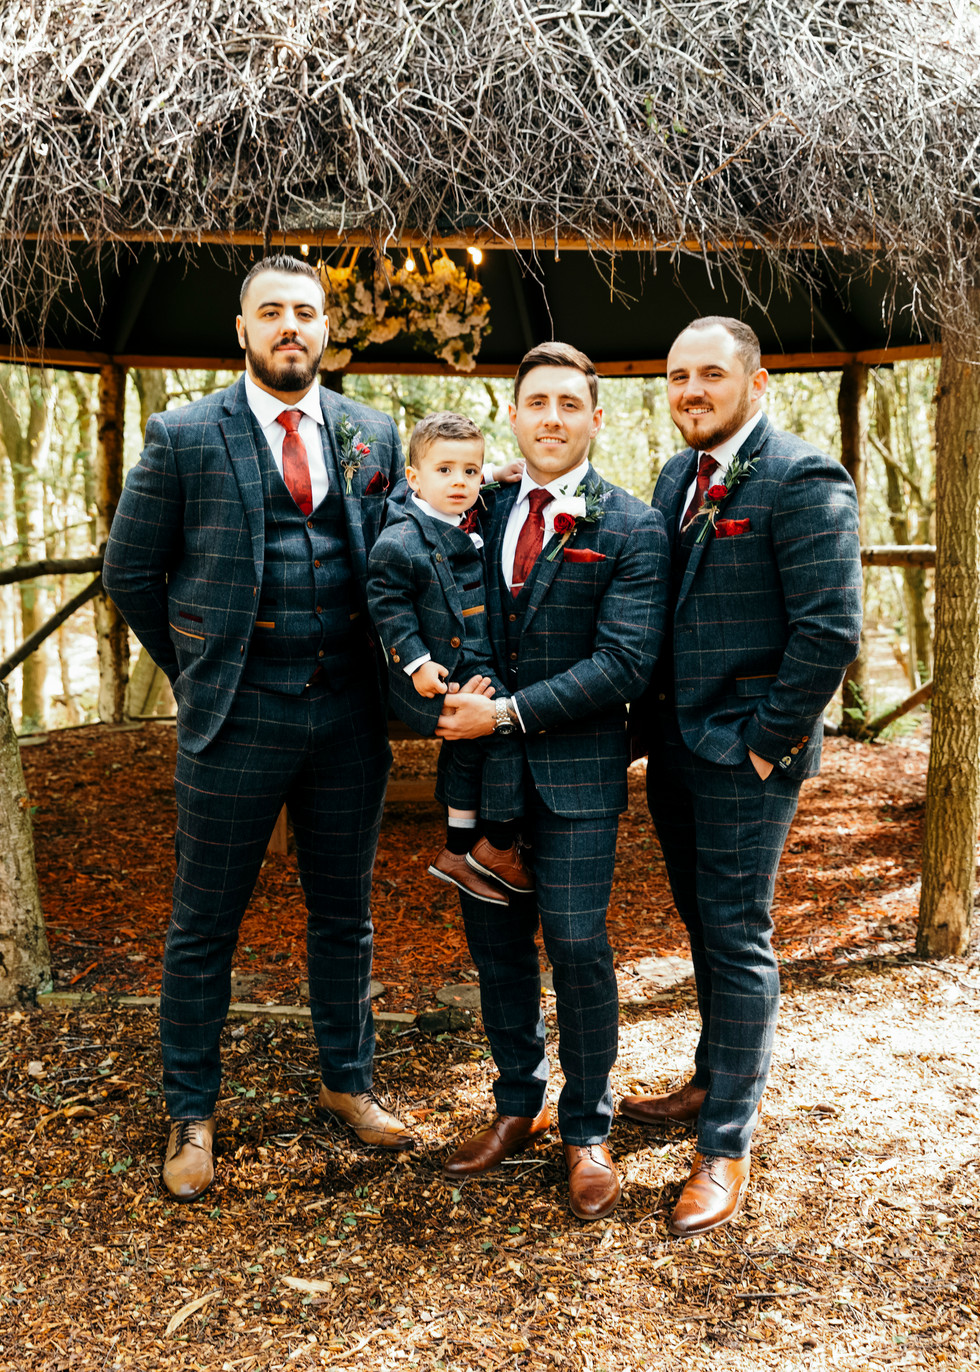 Grooms party dressed to impress before the wedding